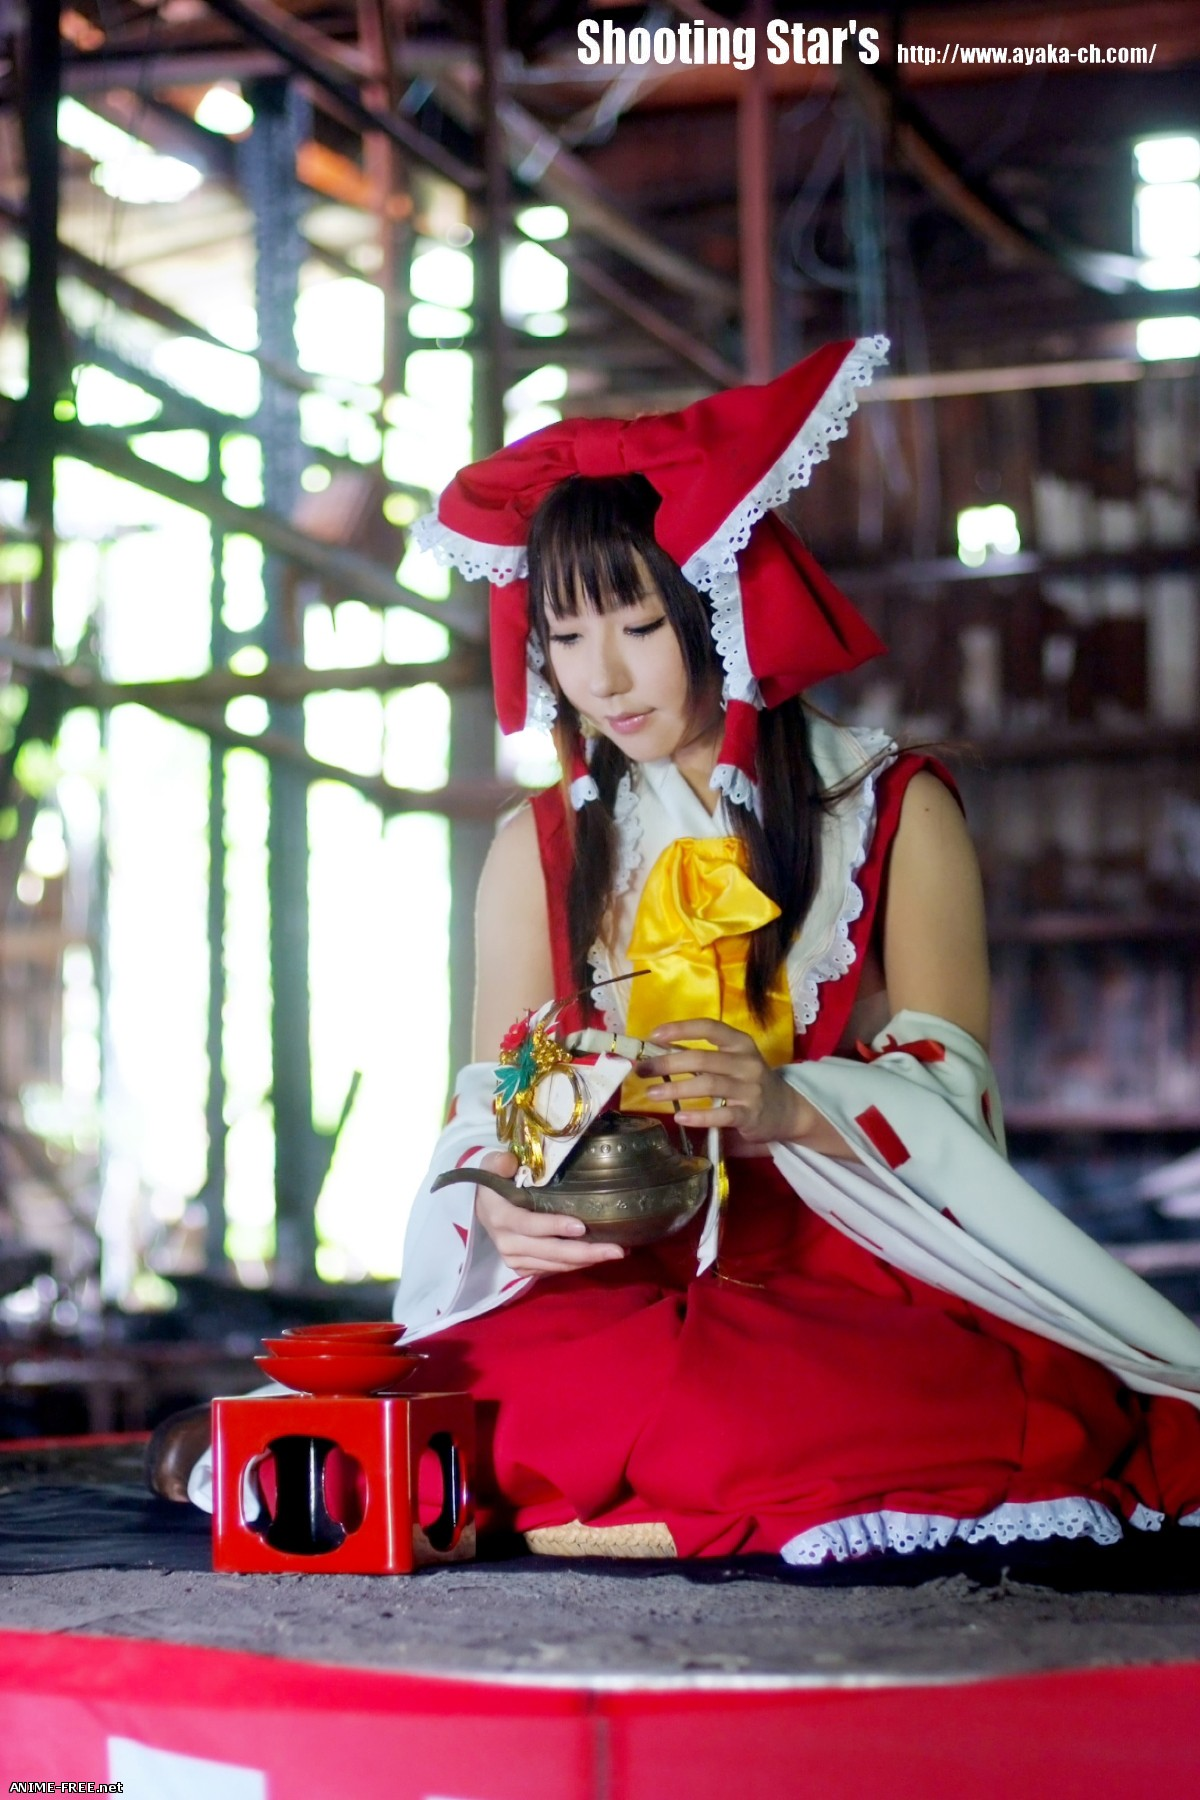 Touhou Project Cosplay girls [photo] Erotic Cosplay